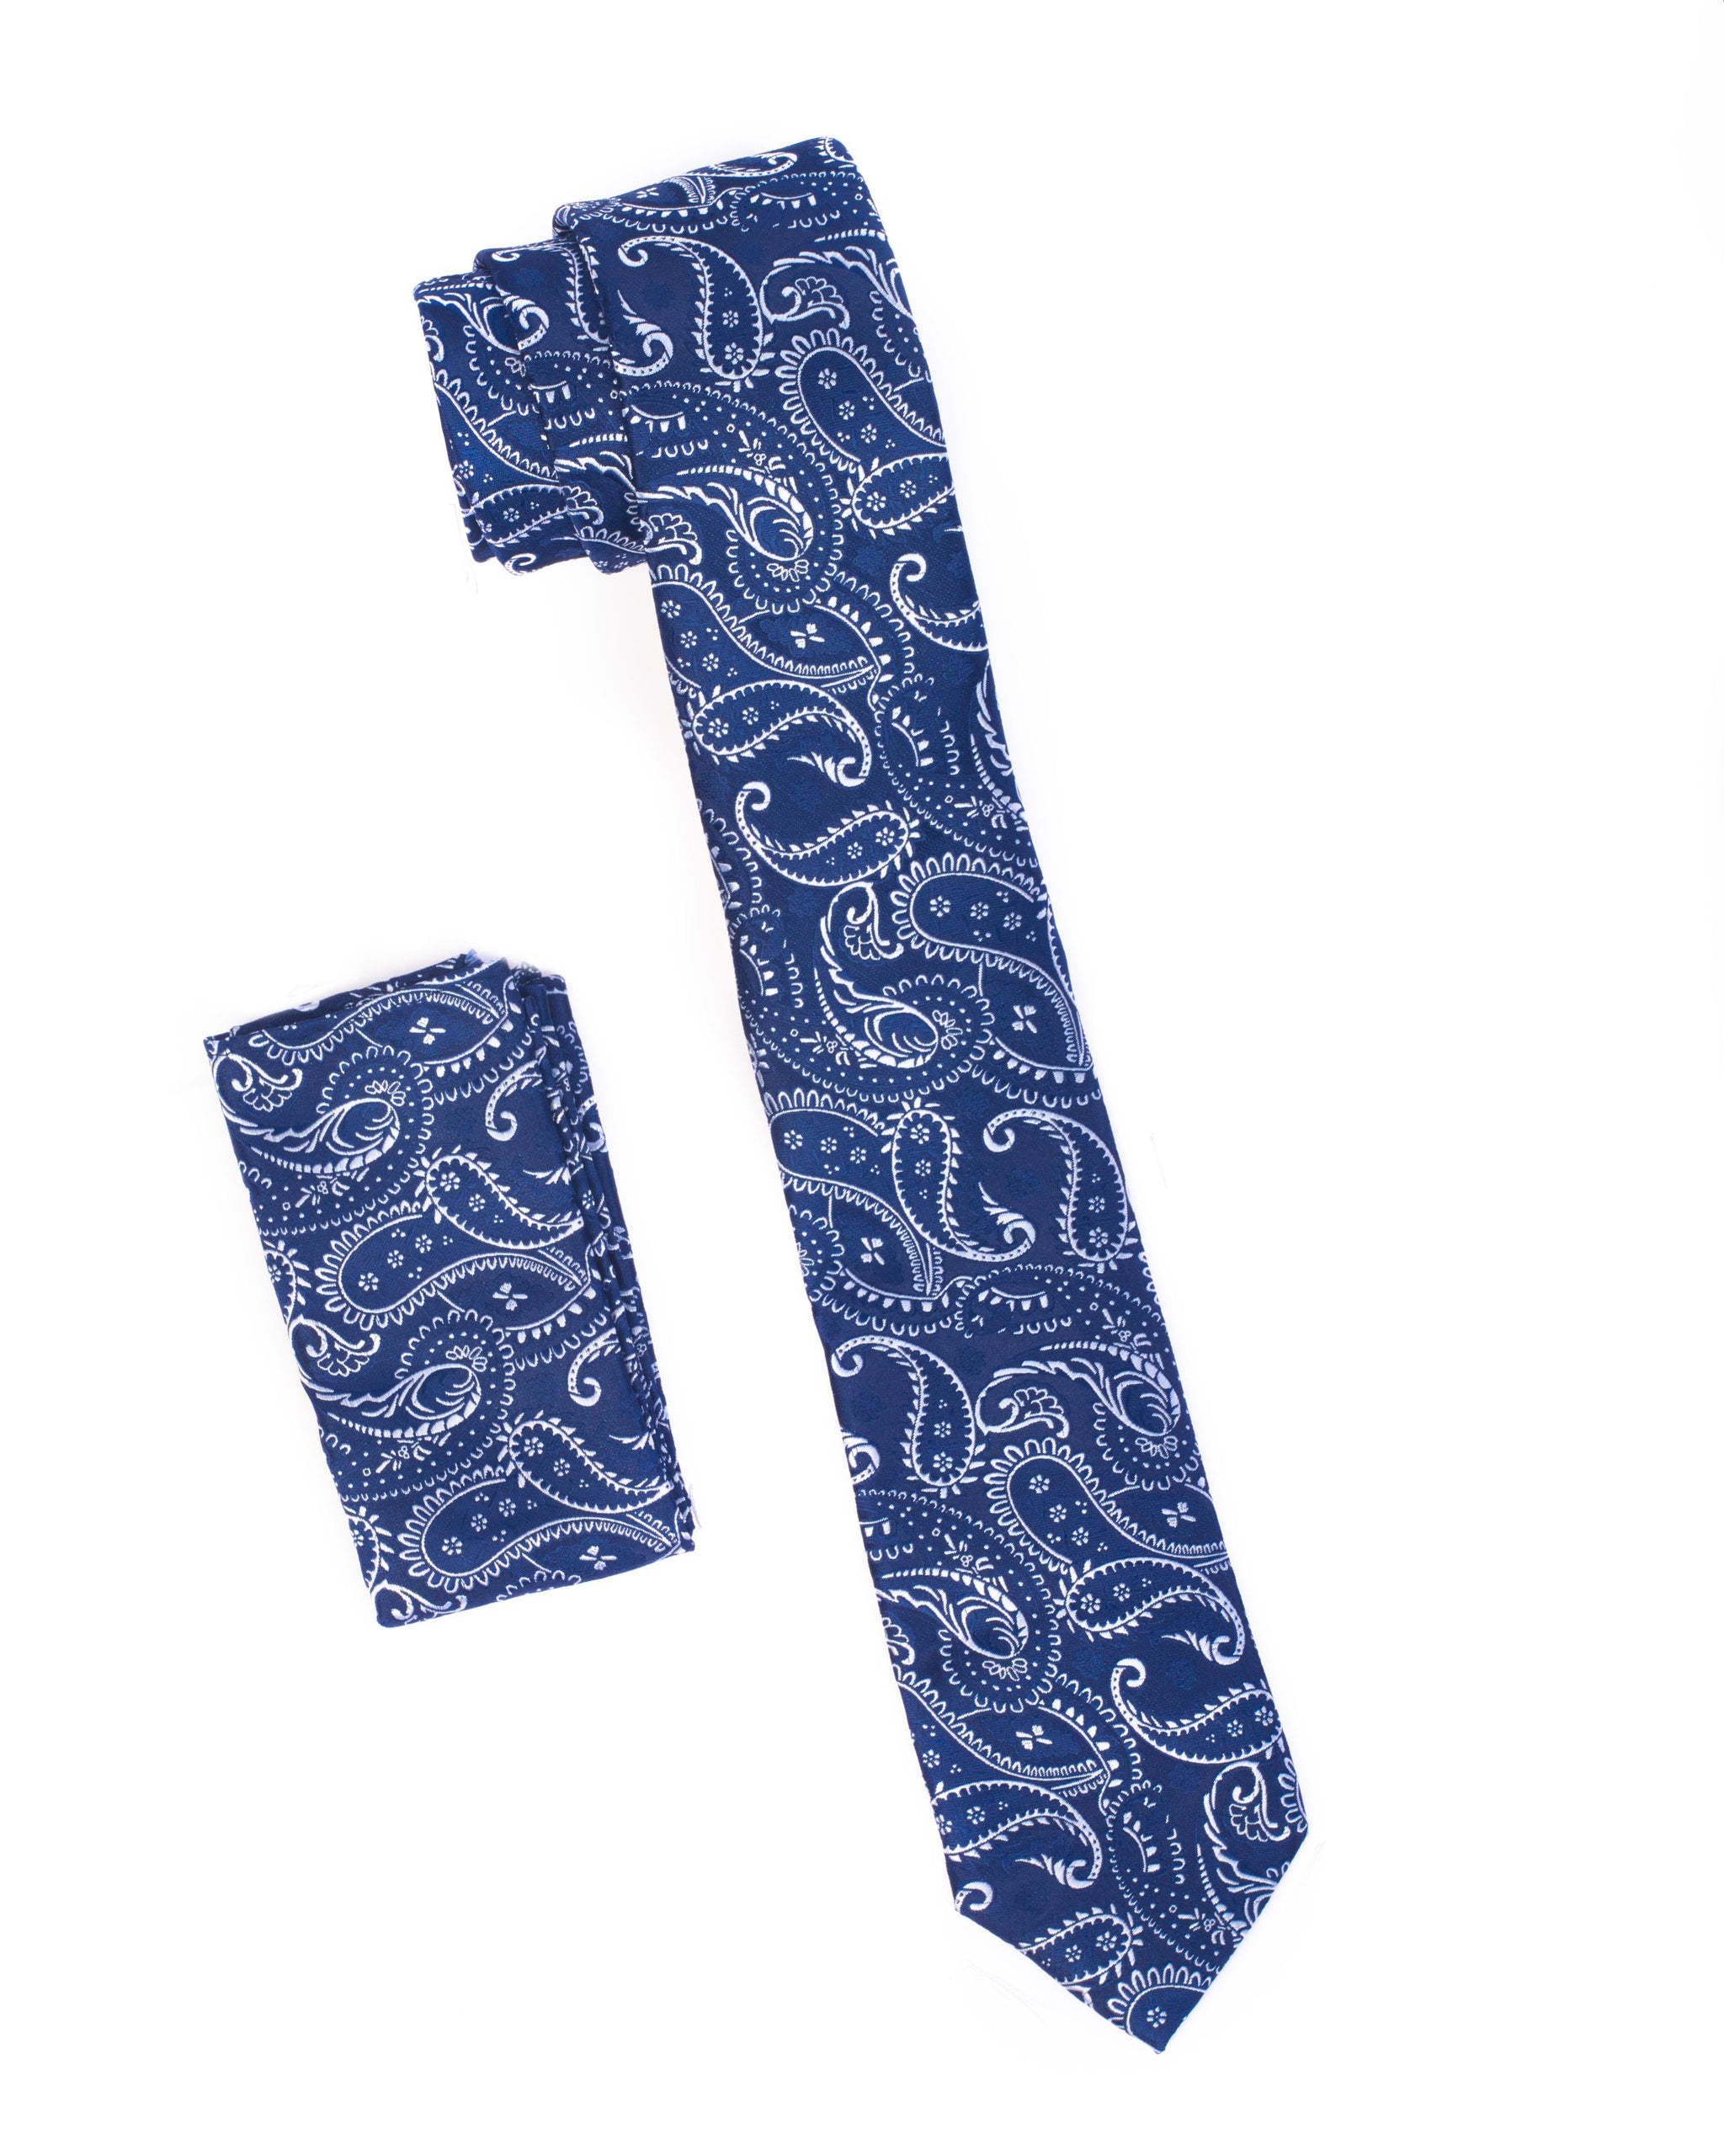 Navy & White Paisley Tie & Pocket Square